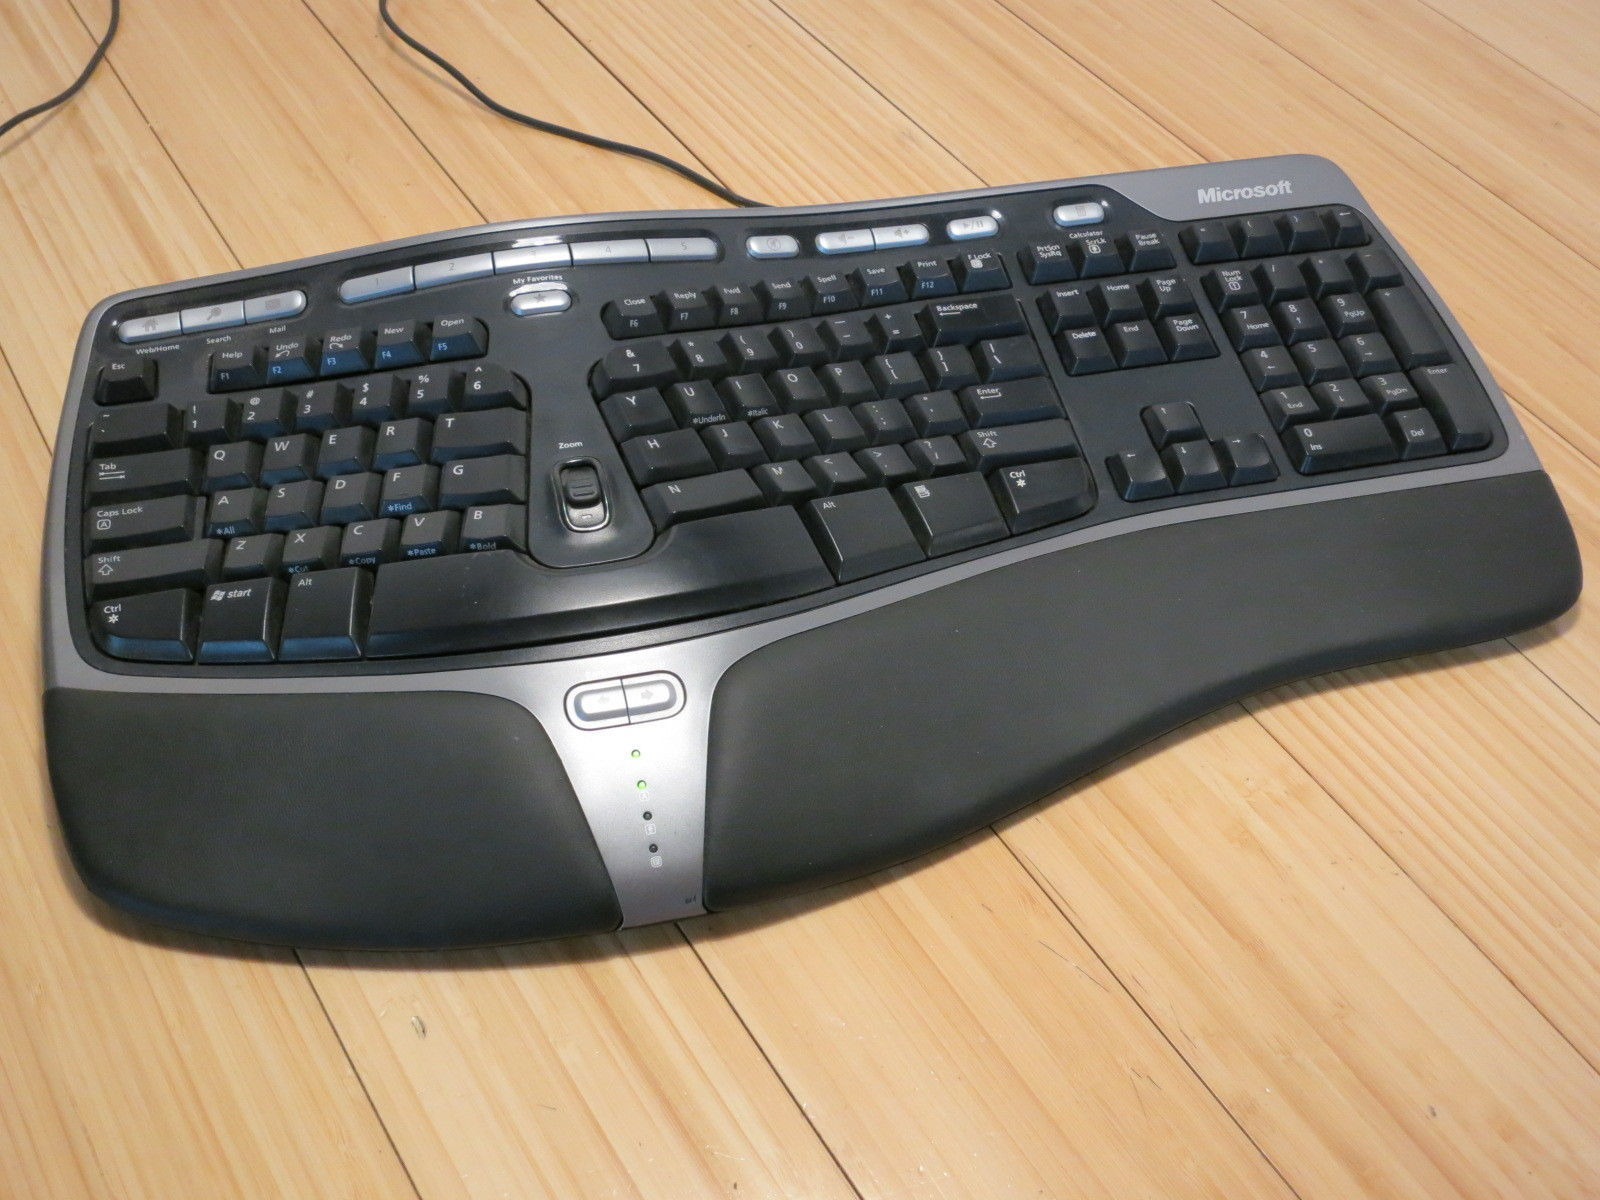 Microsoft Wired Natural Ergonomic 4000 V1.0 and 50 similar items